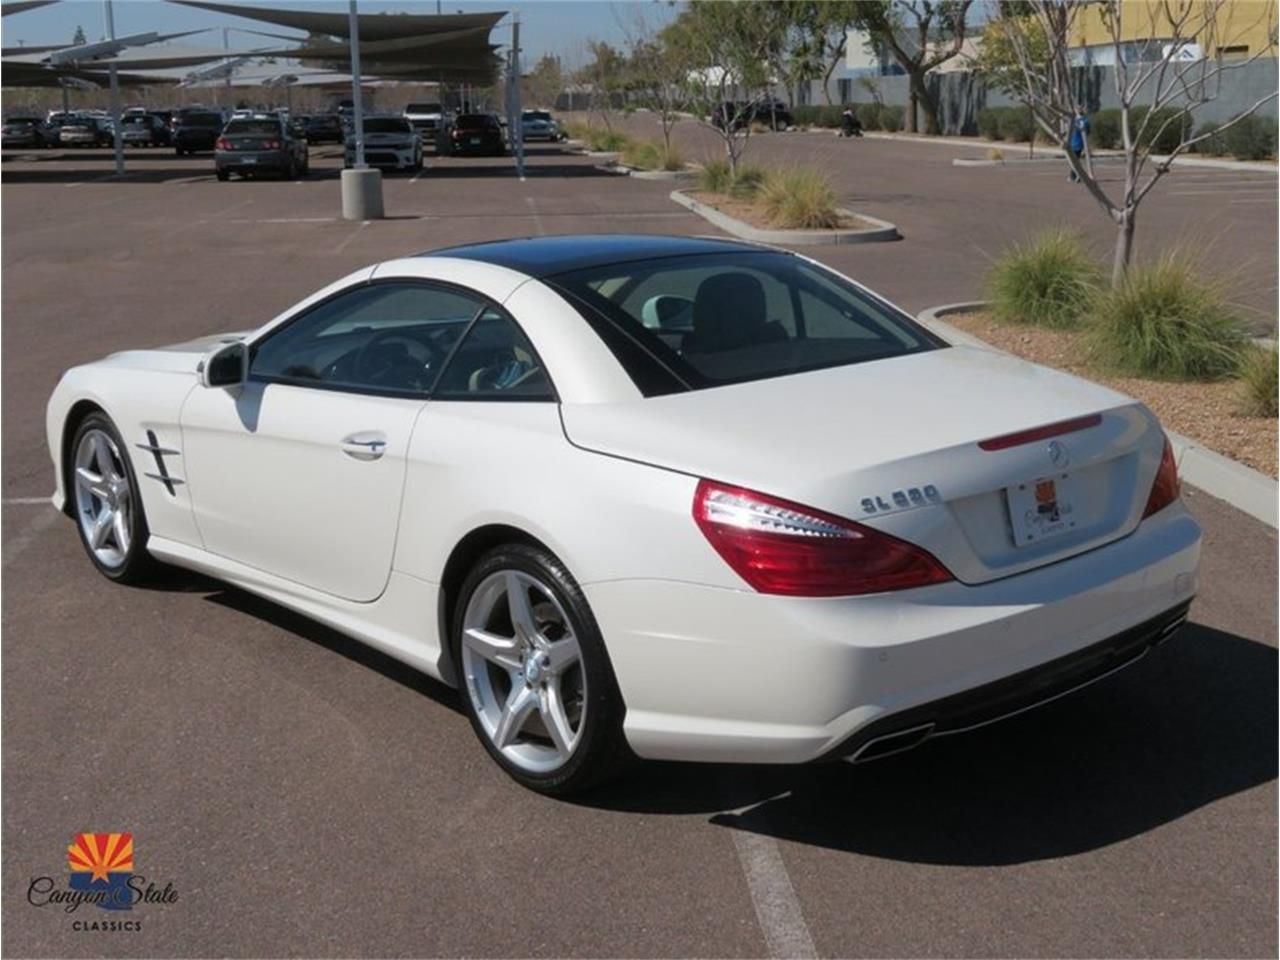 2013 Mercedes-Benz SL-Class for sale in Tempe, AZ – photo 10